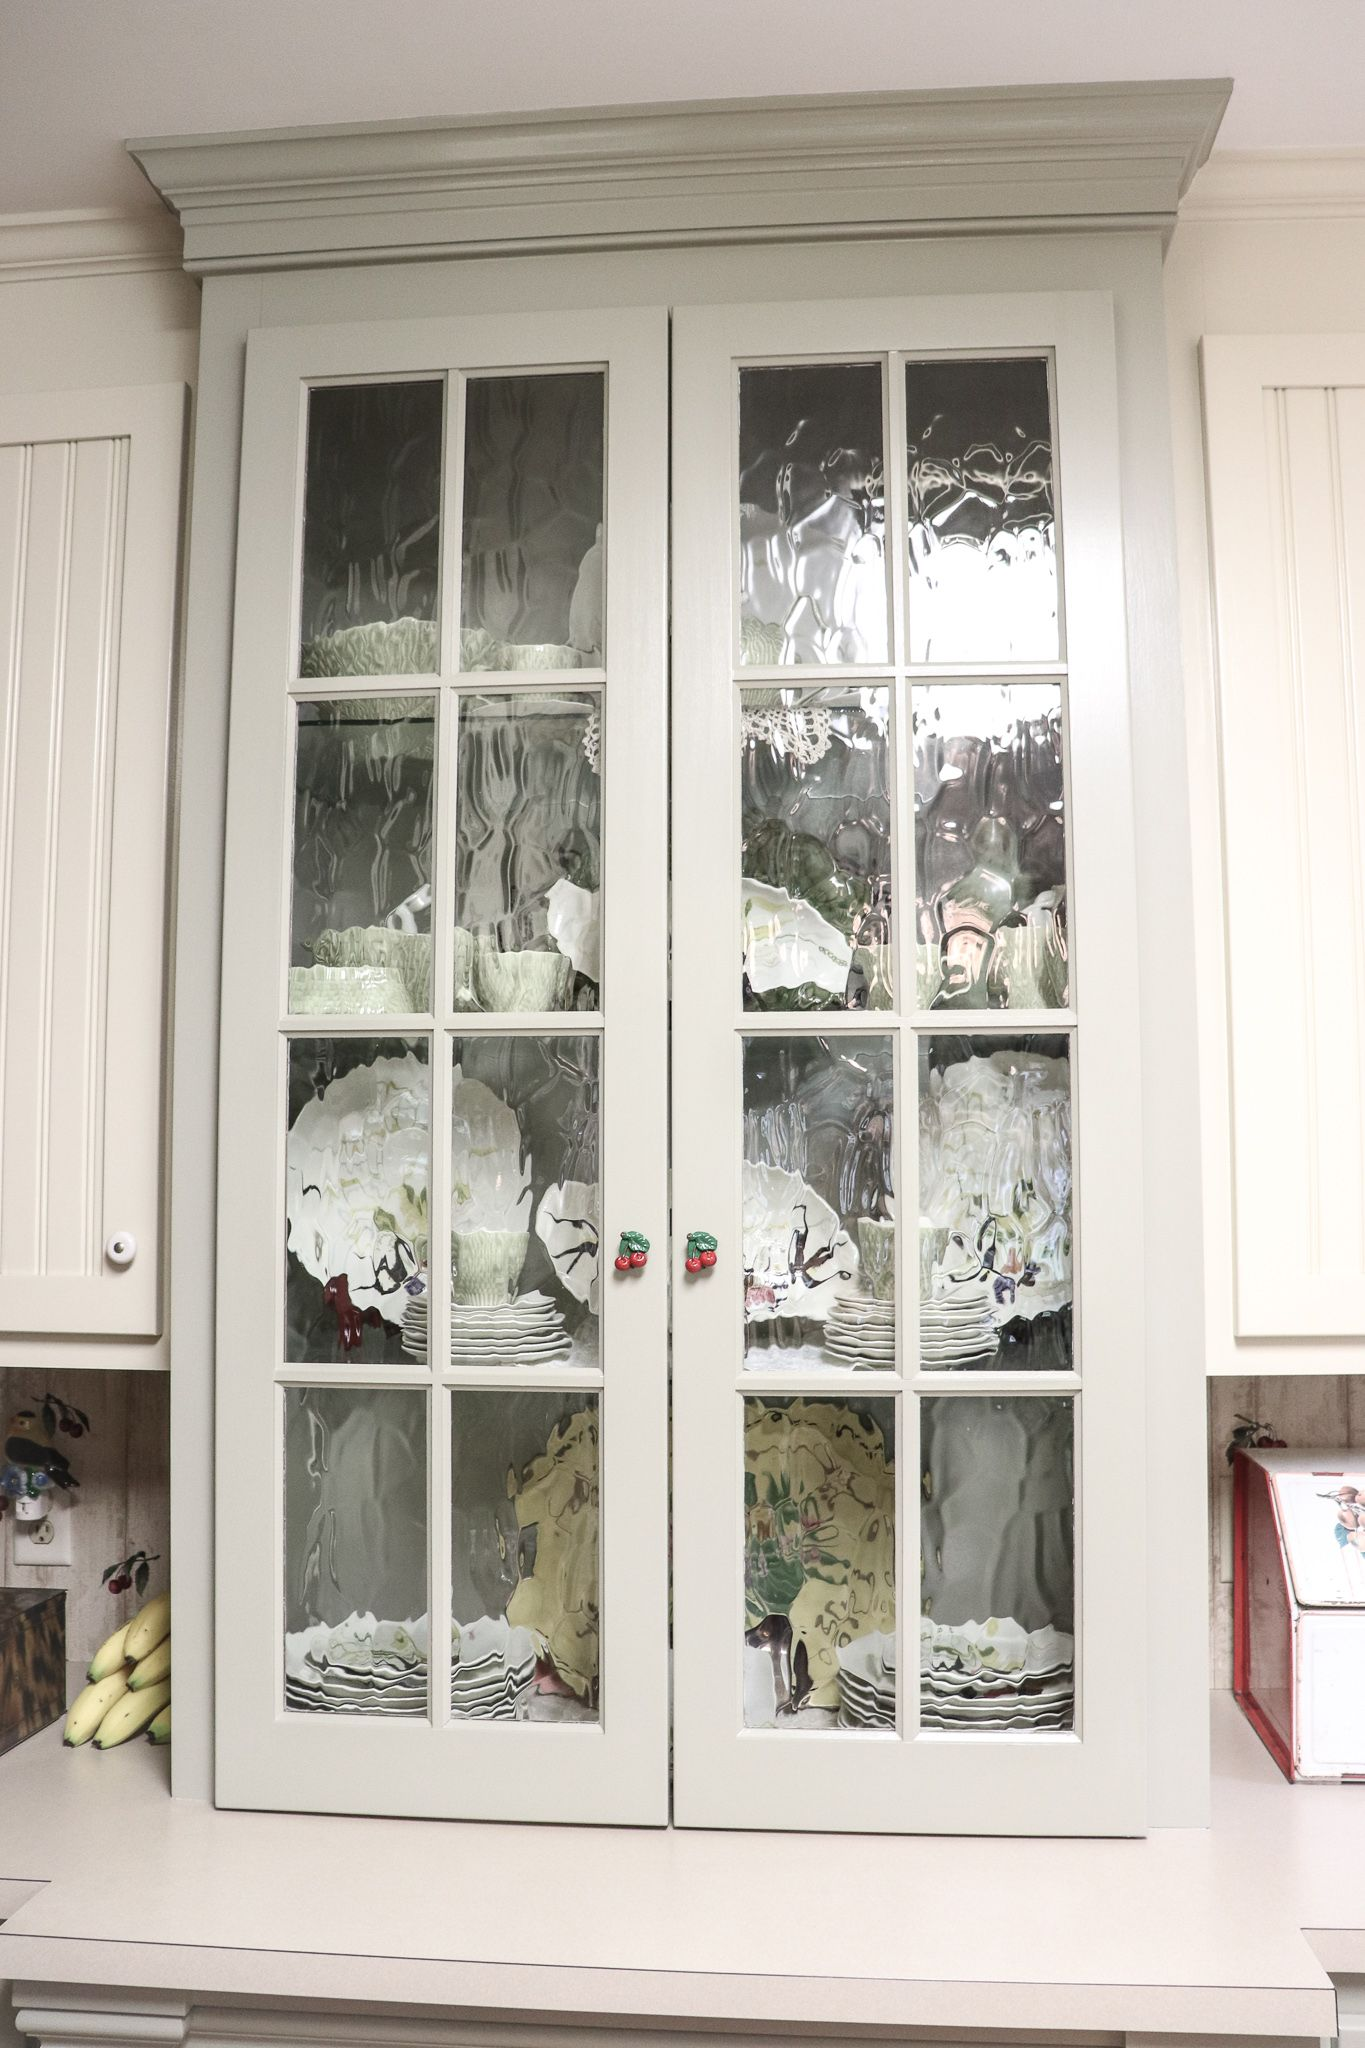 We Love The Detail In This China Cabinet. The Glass, The 2